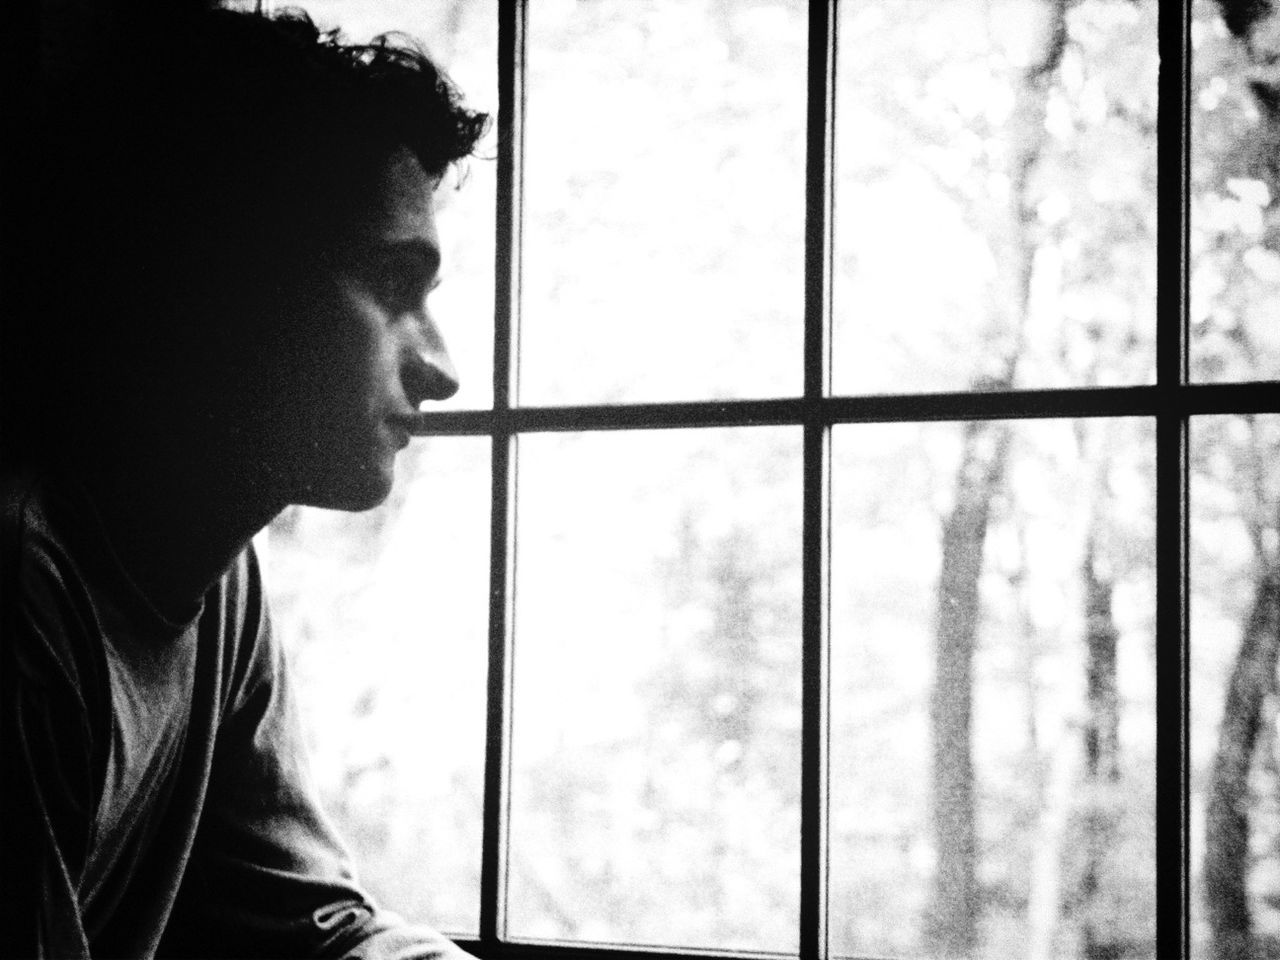 window, indoors, one person, real people, side view, looking through window, home interior, lifestyles, day, close-up, young adult